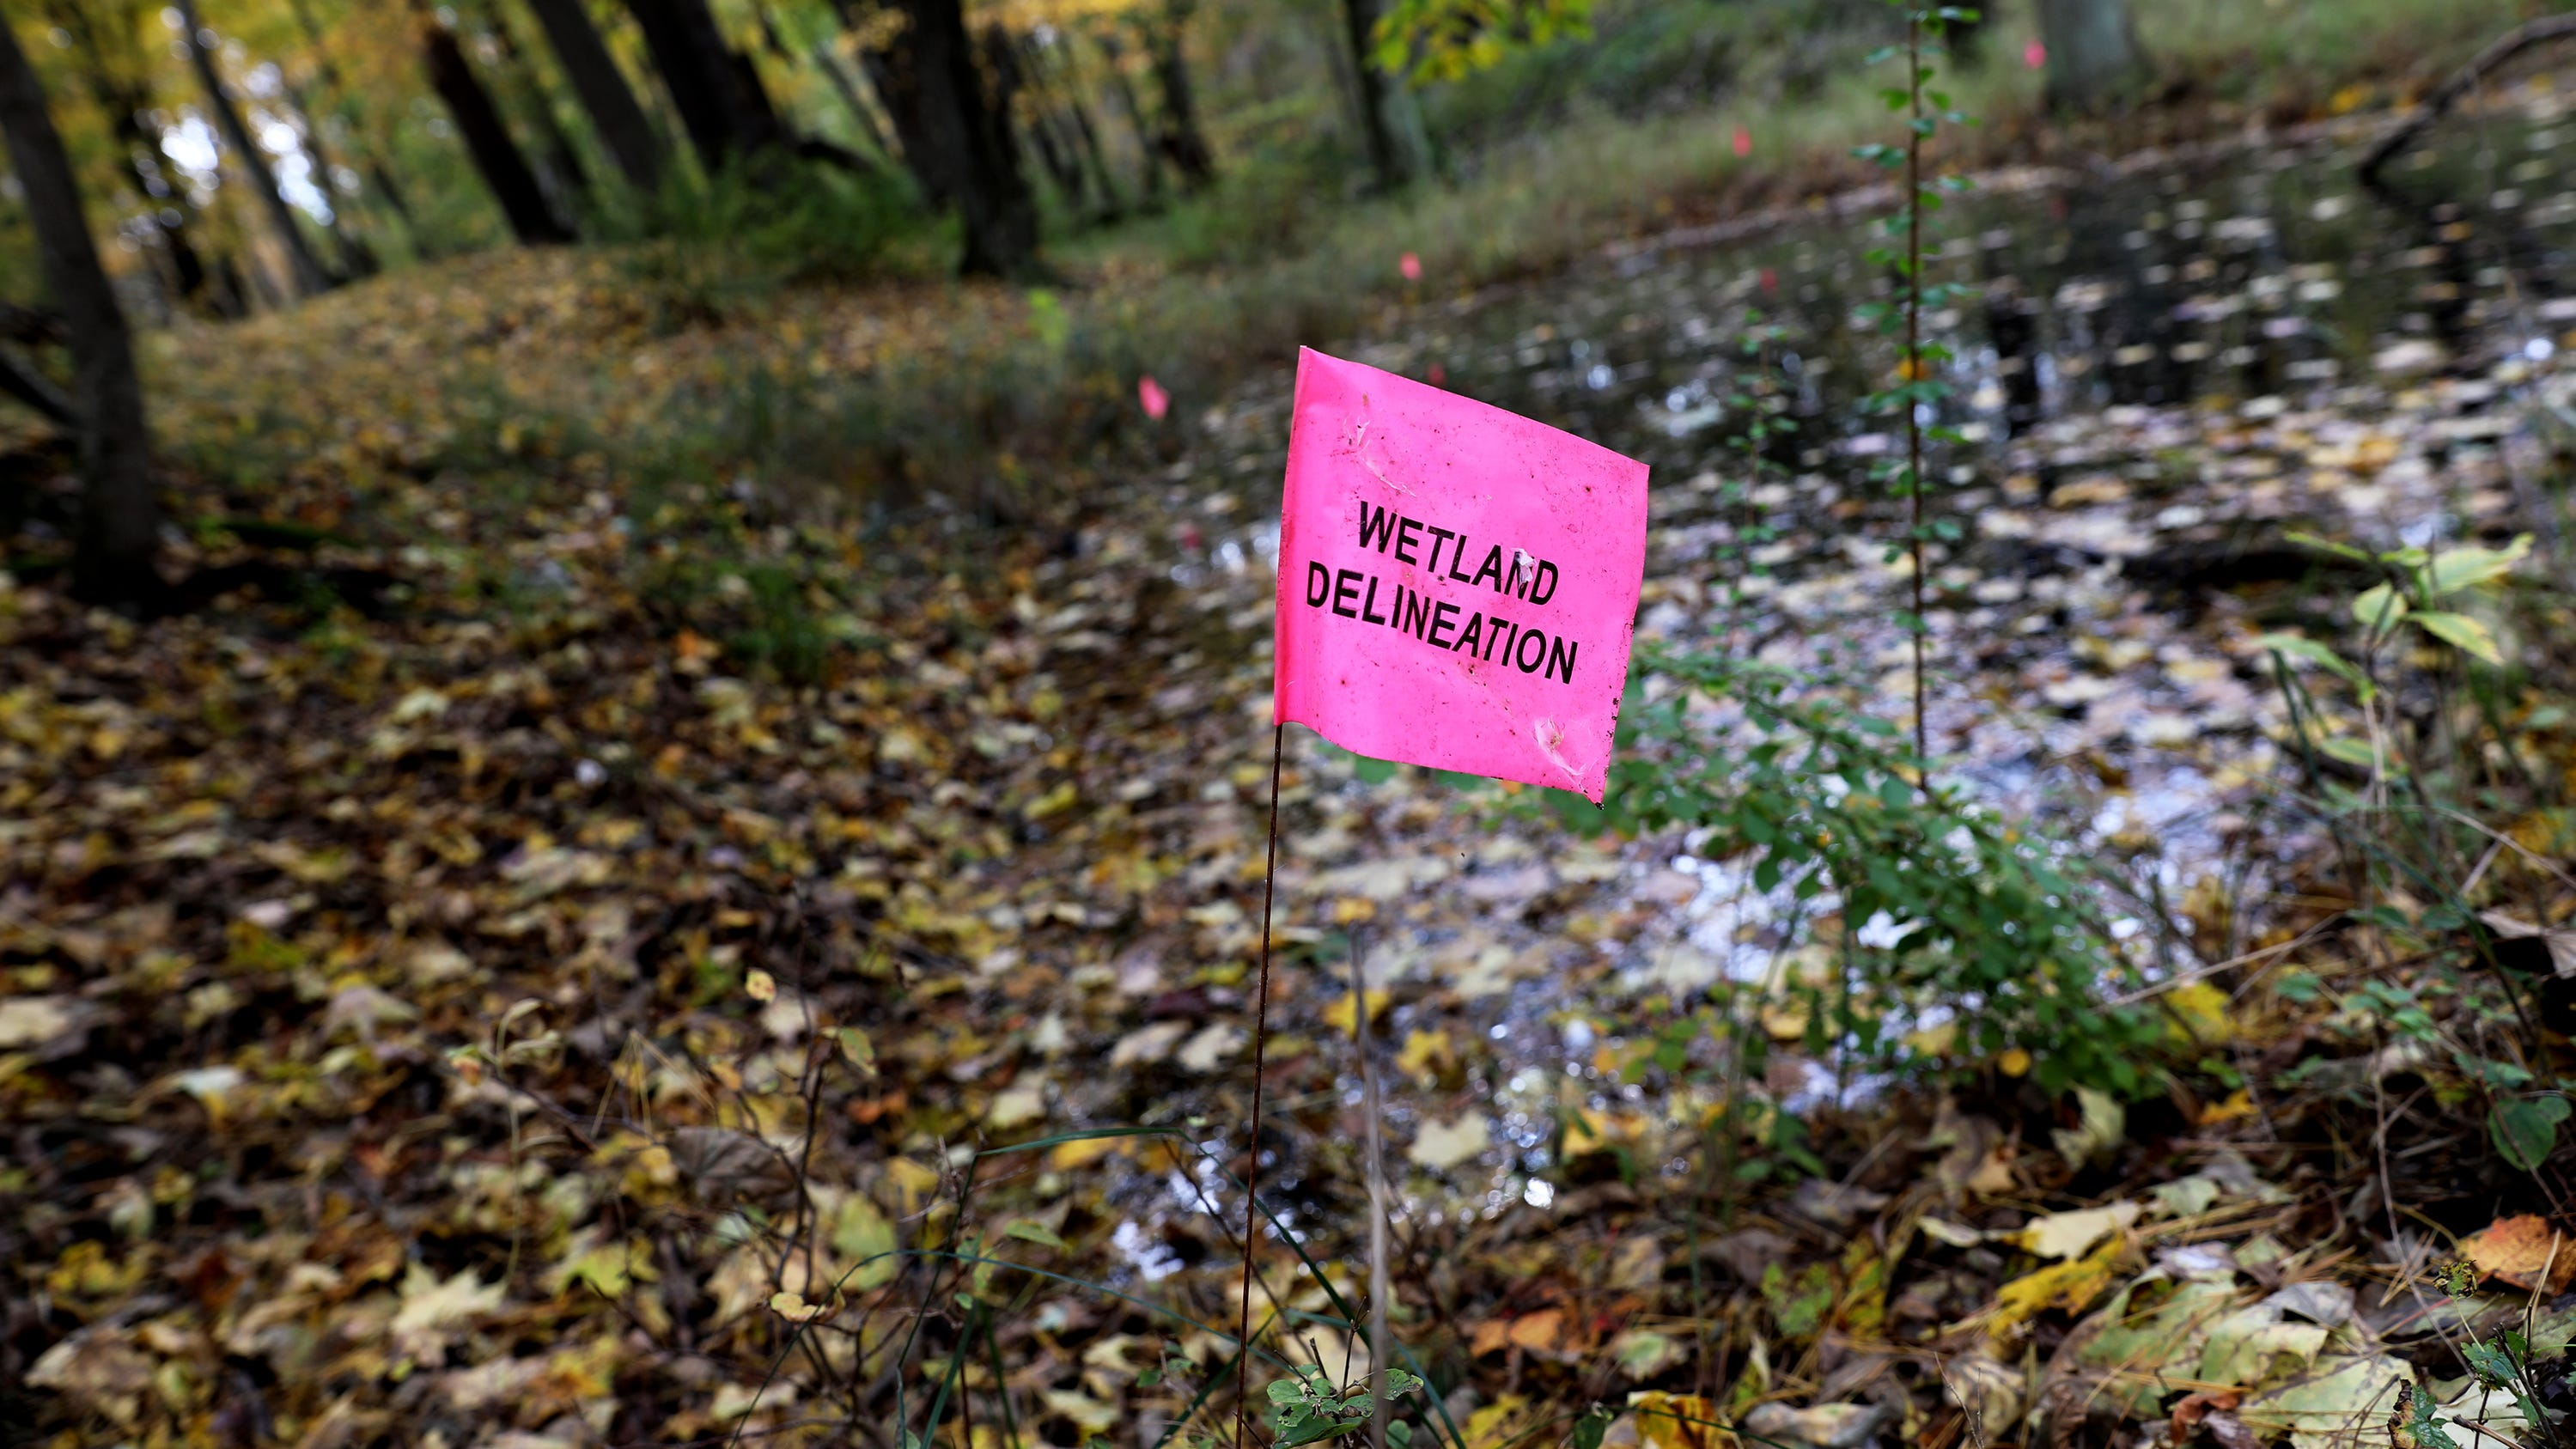 Former DNR employee: Staff pressured to OK Kohler golf course on rare Wisconsin wetlands and state park